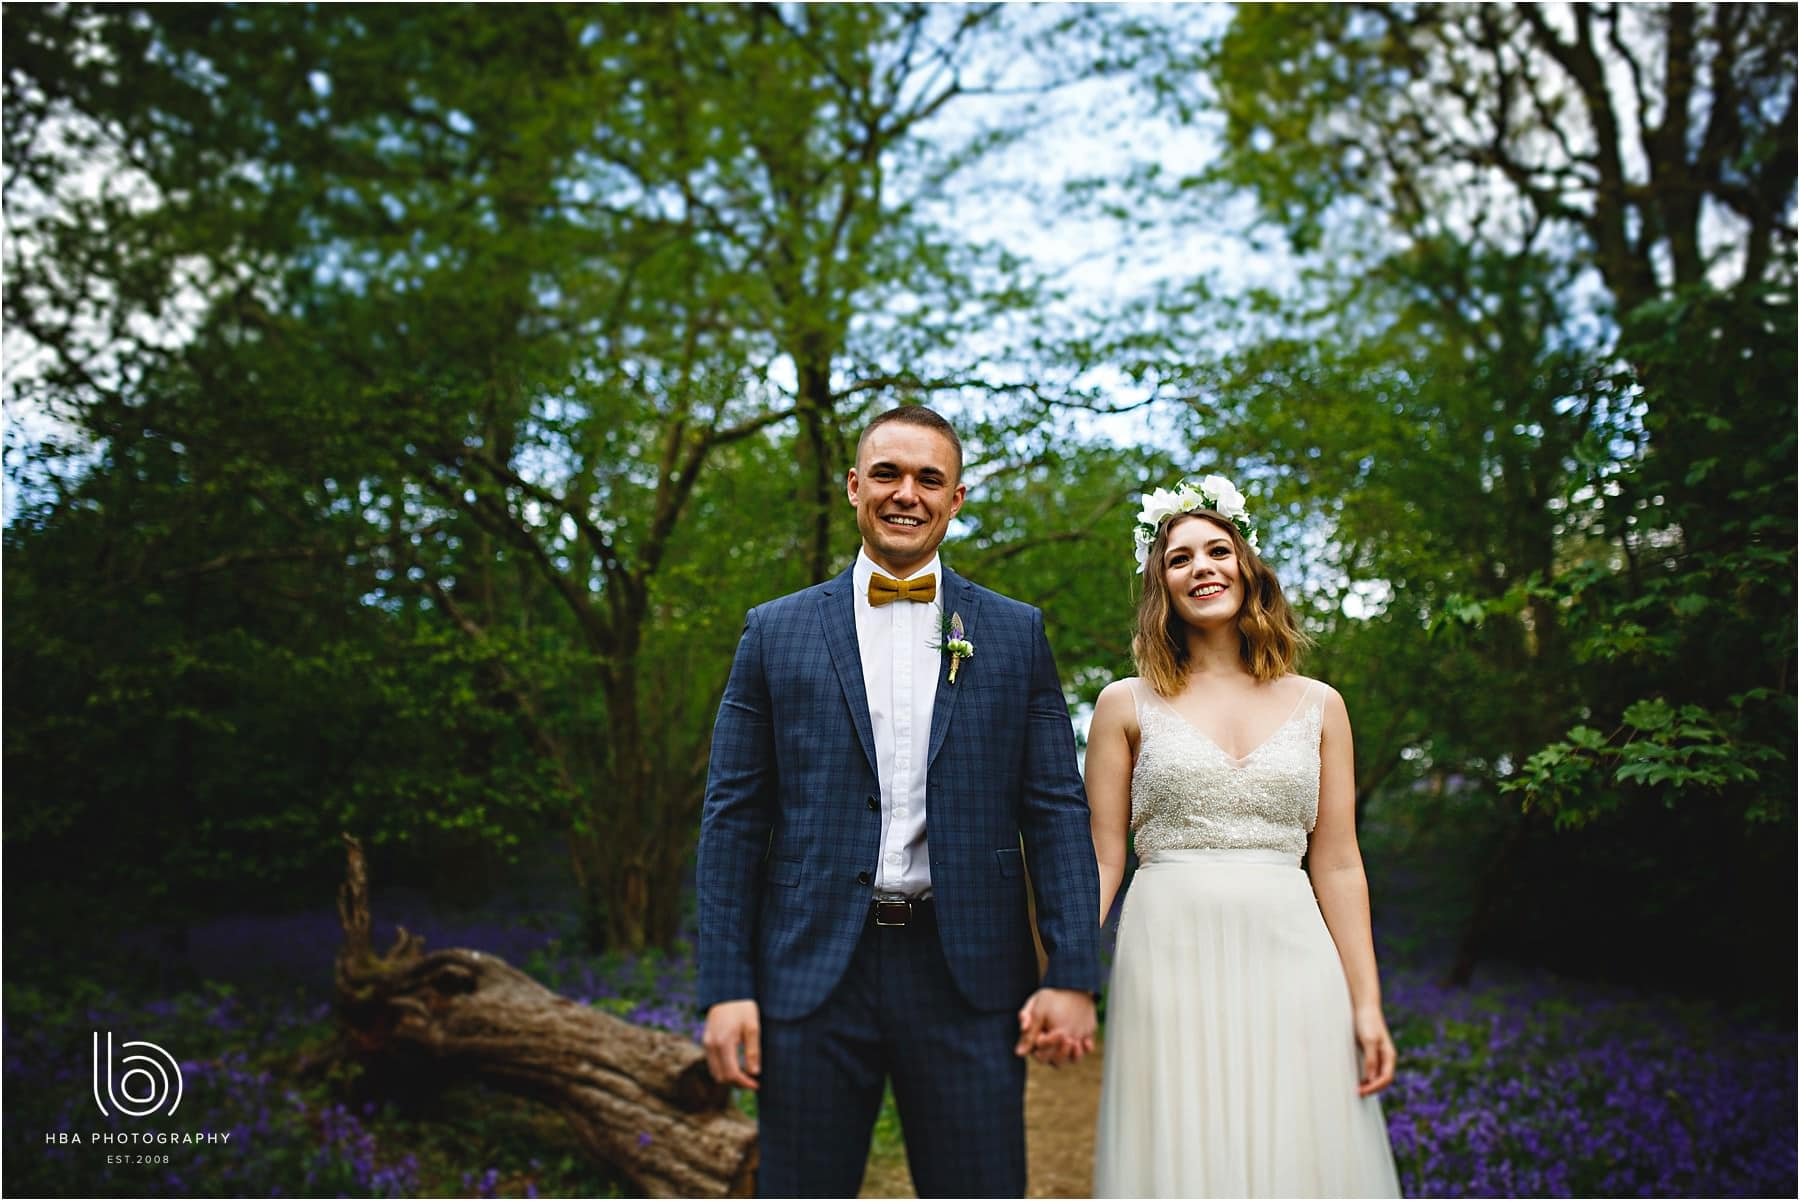 the bride and groom in the bluebell woods